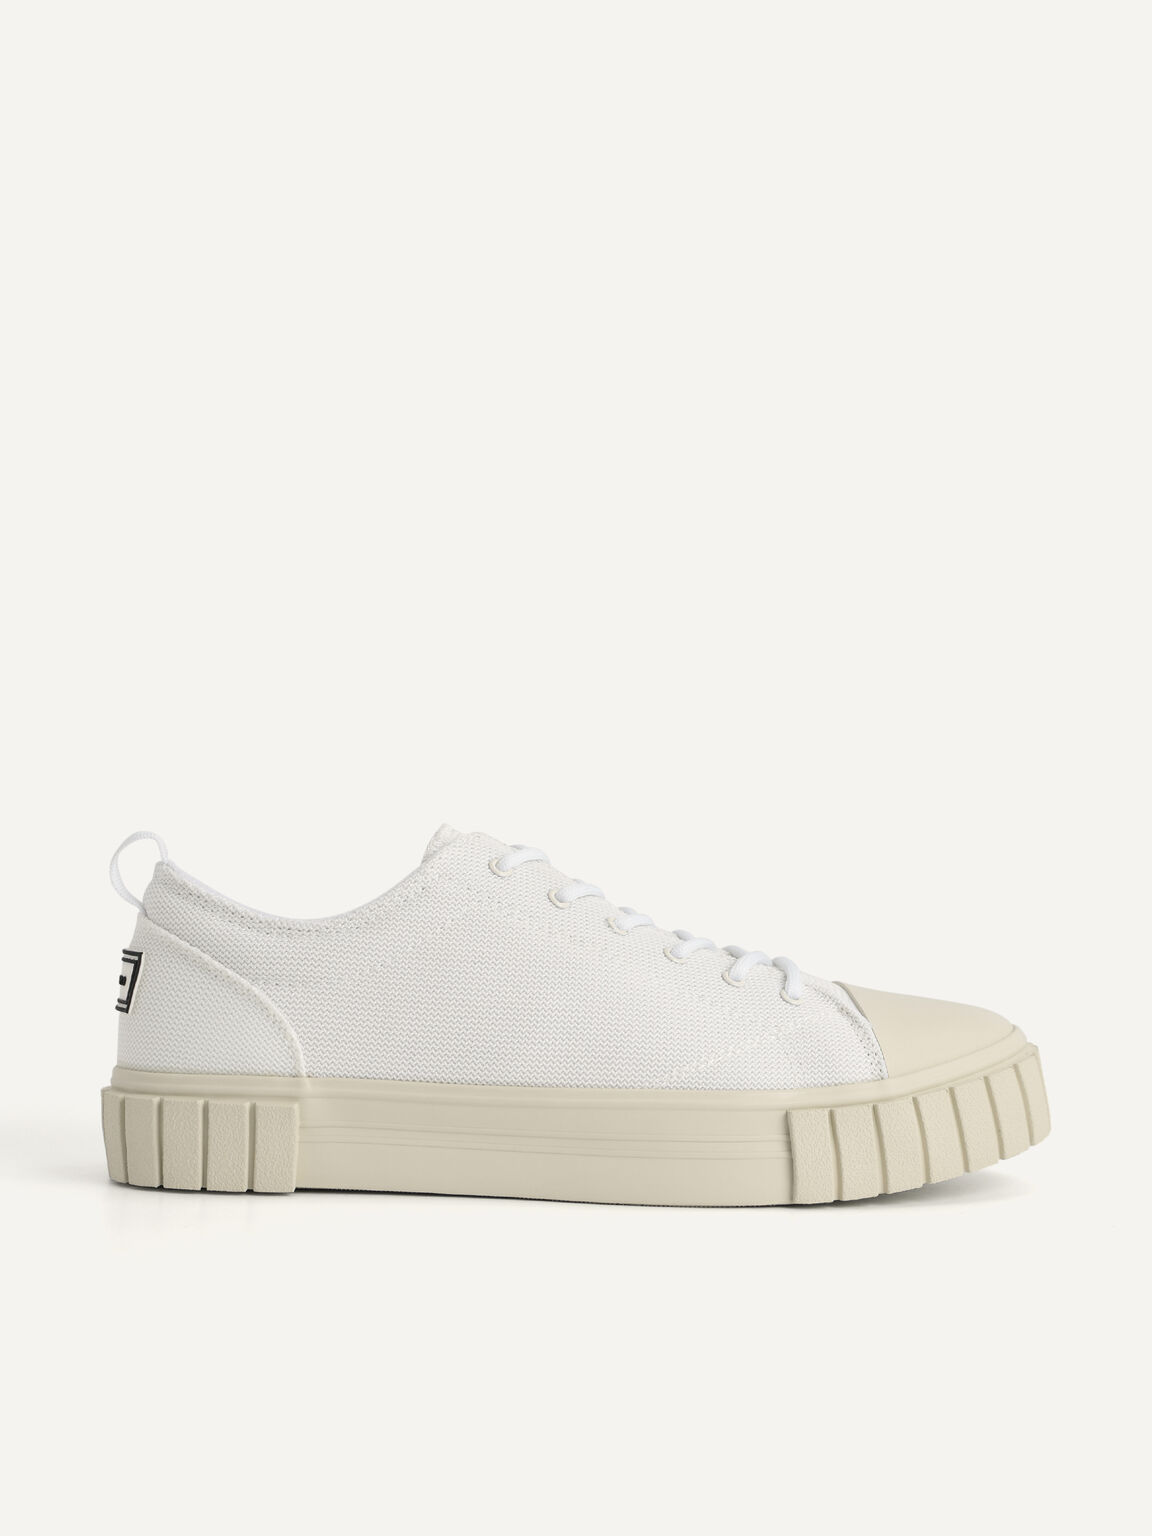 Beat Court Sneakers, White, hi-res